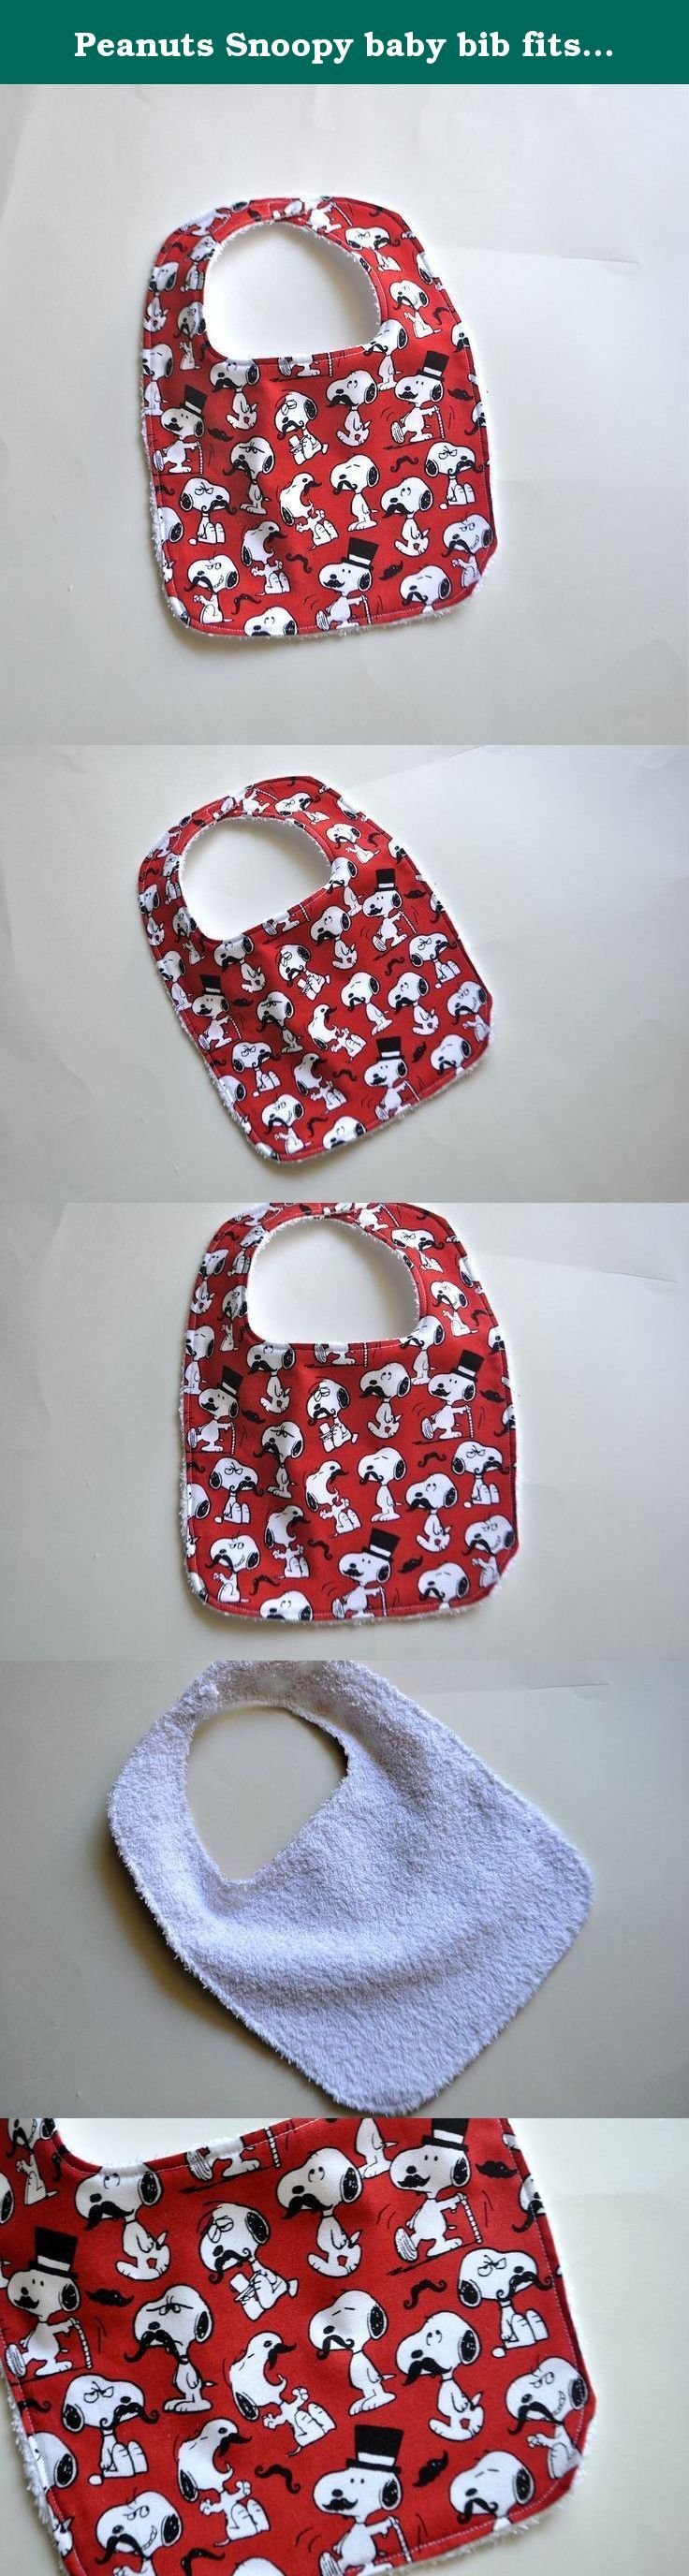 Peanuts Snoopy baby bib fits sizes 0-12 months. Say hello to Snoopy! This Snoopy Baby Bib is perfect for babies 0-12 months! These adorable baby bibs are perfect for a new baby shower. Snoopy and Peanuts fans will love these for their new little baby's bibs. This classic Snoopy bib is popular with little Peanuts fans and their parents. This listing is for a Peanuts baby bib, in Snoopy with a mustache print. All Charlie Brown baby bibs are backed with white terry cloth (yes, like a towel)…